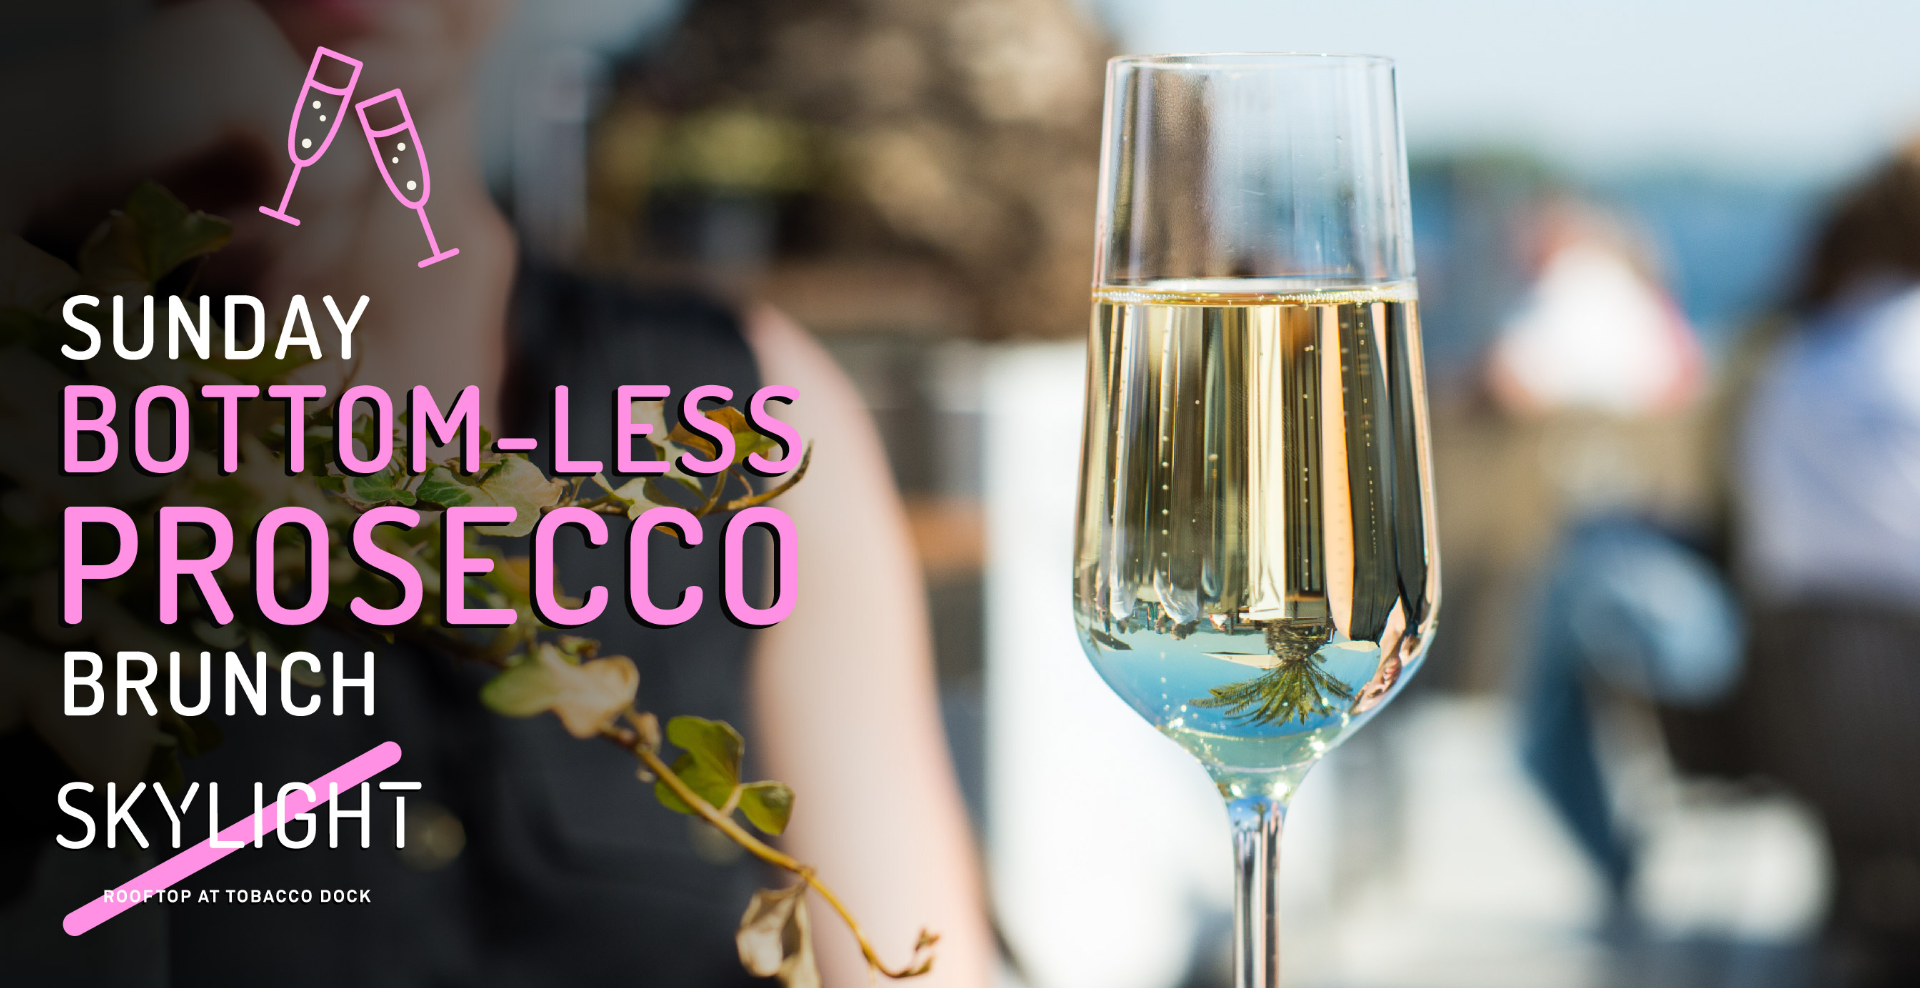 Bottom-less Prosecco Brunch (Every Sunday at Skylight)